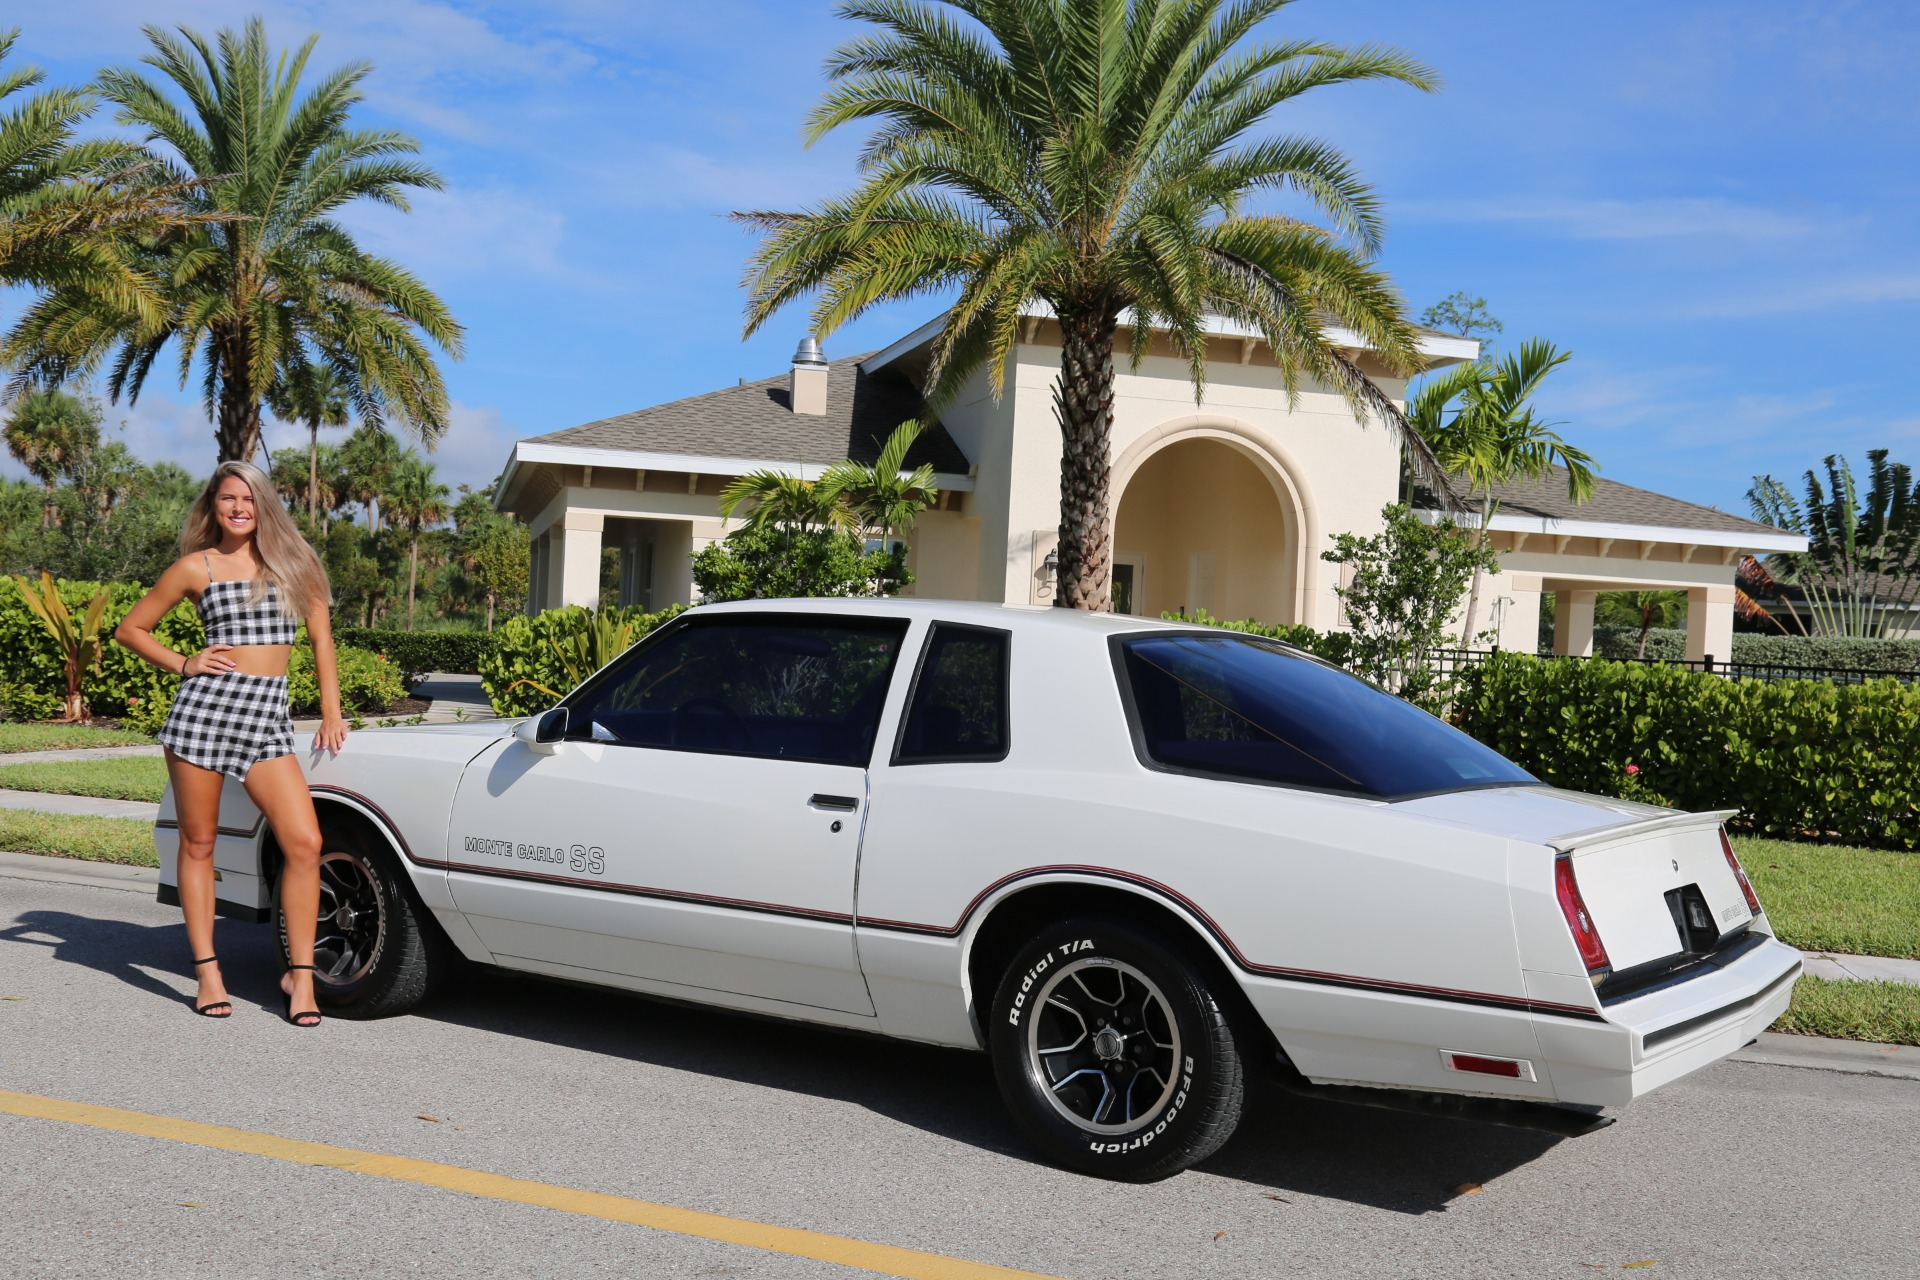 Used 1986 Chevrolet Monte Carlo SS Aero for sale $13,000 at Muscle Cars for Sale Inc. in Fort Myers FL 33912 1